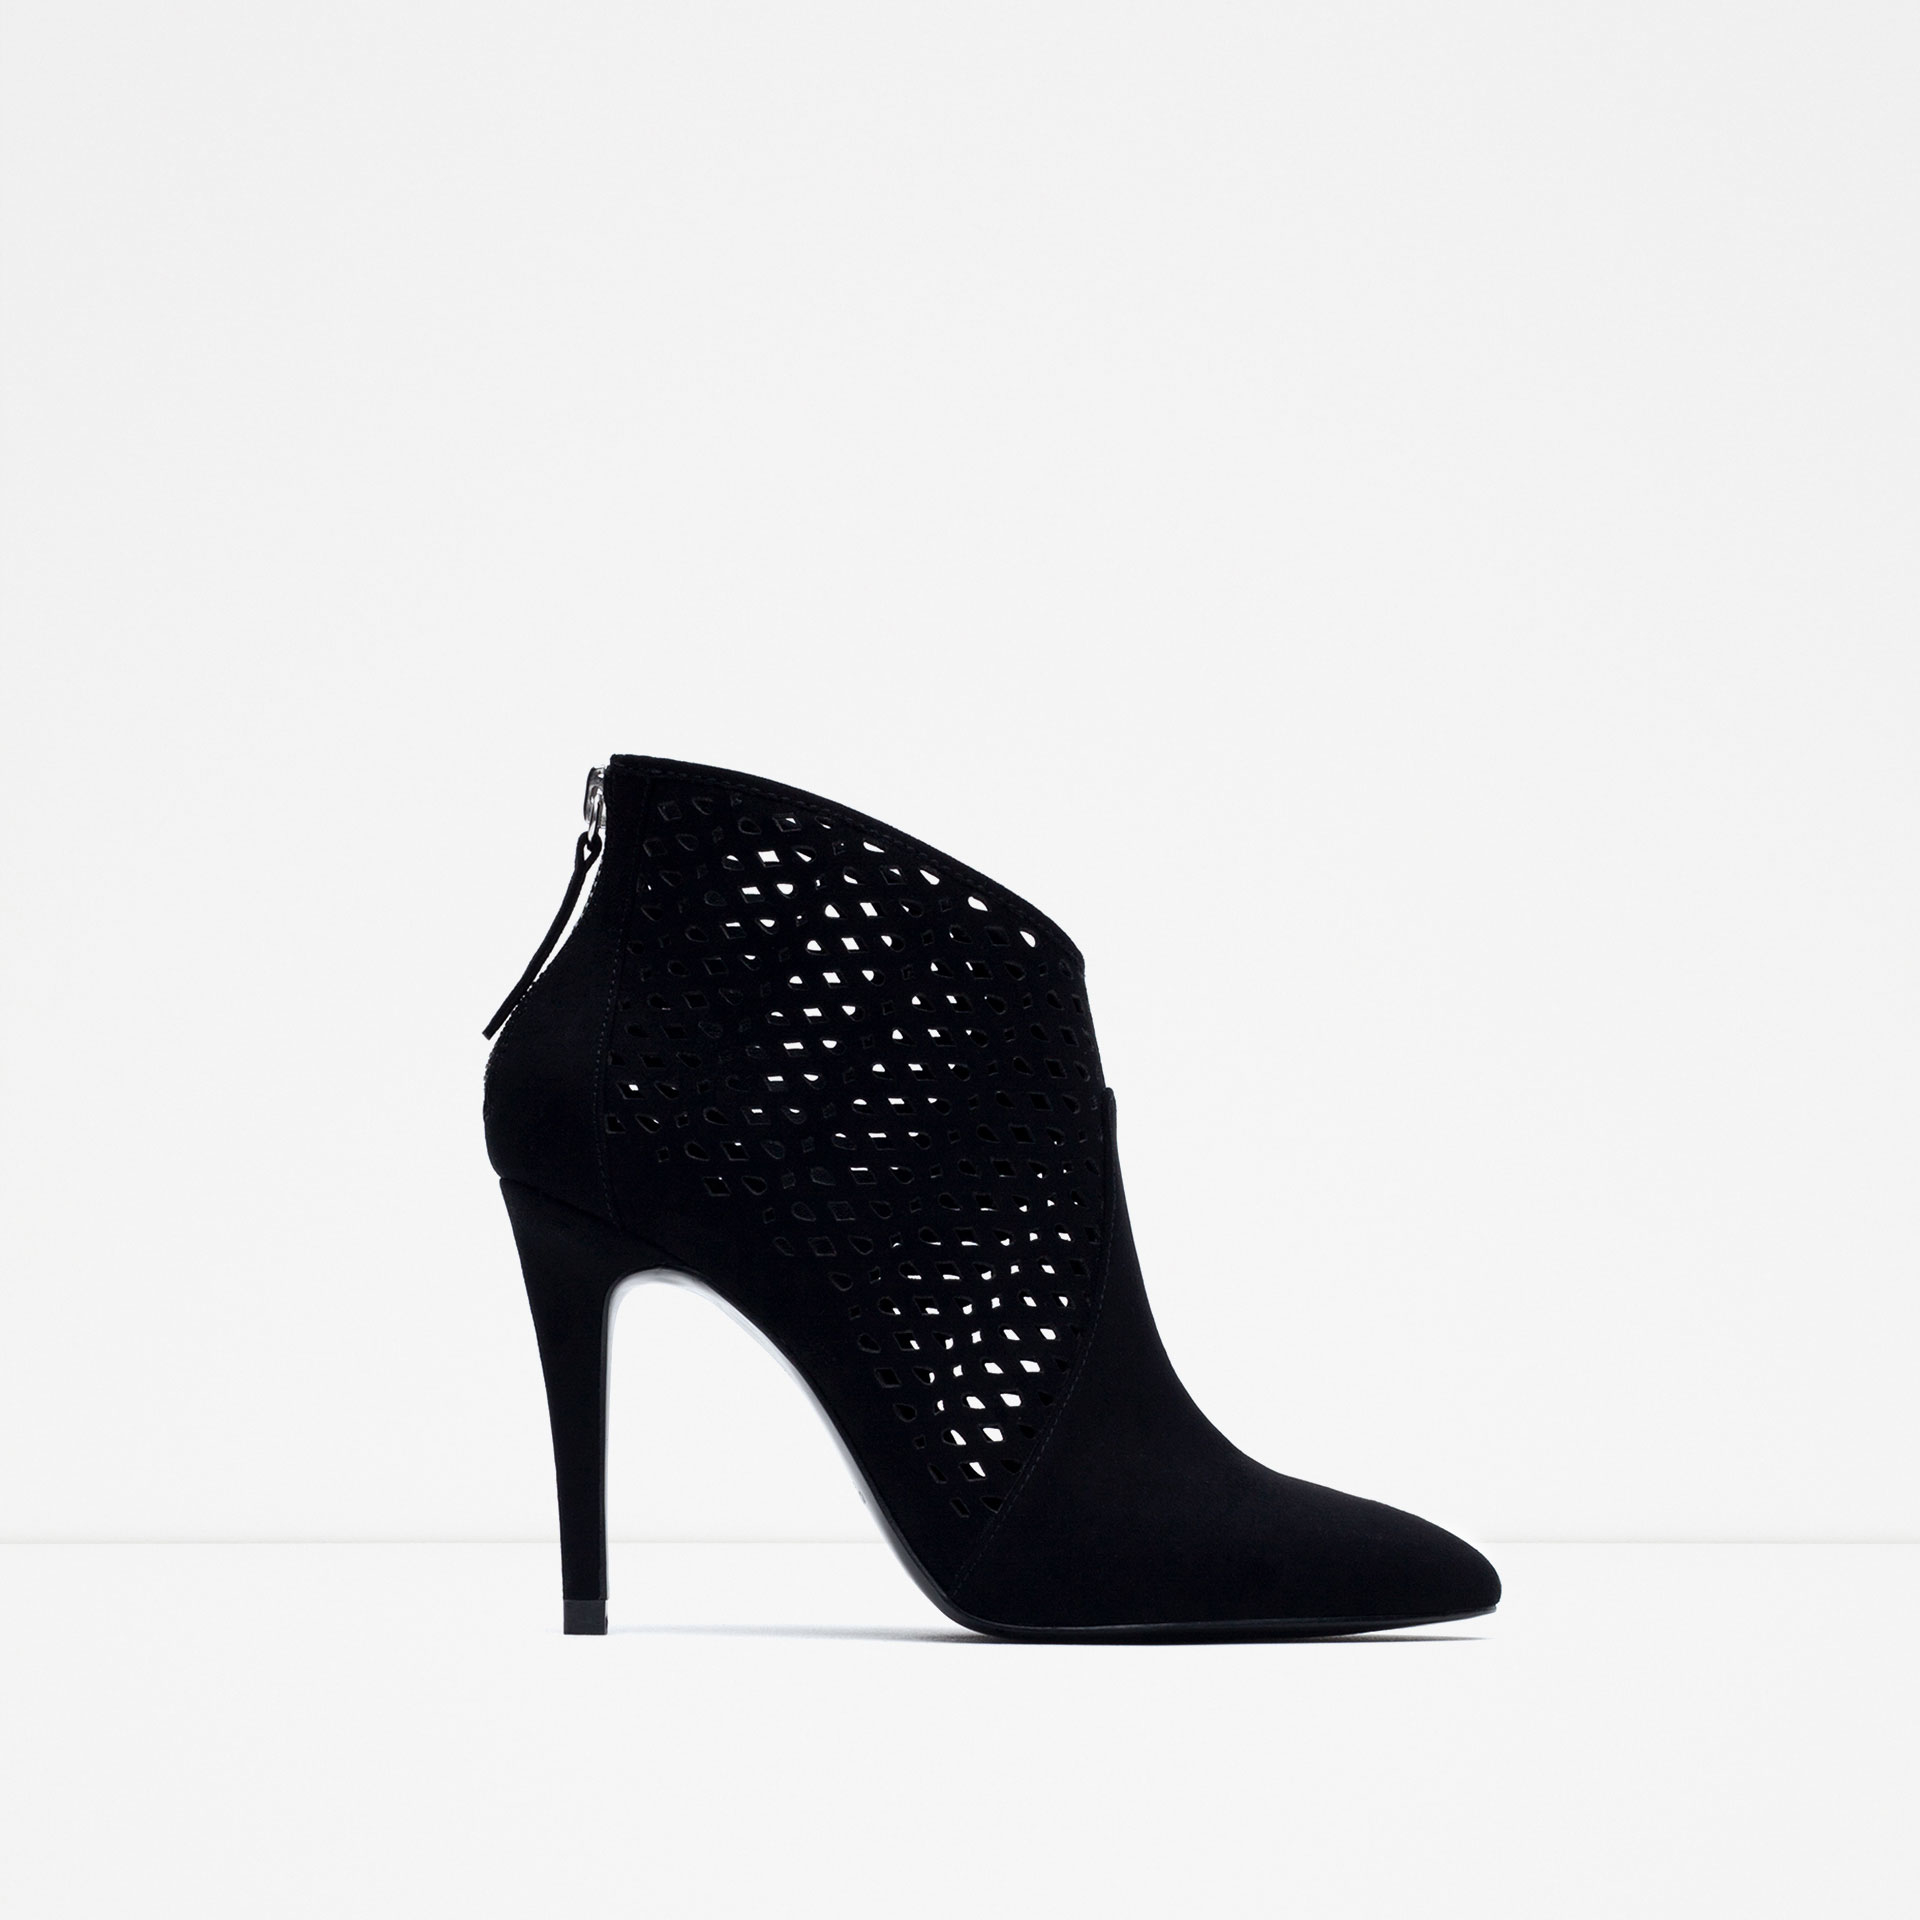 Zara High Heel Leather Ankle Lace Up Boot